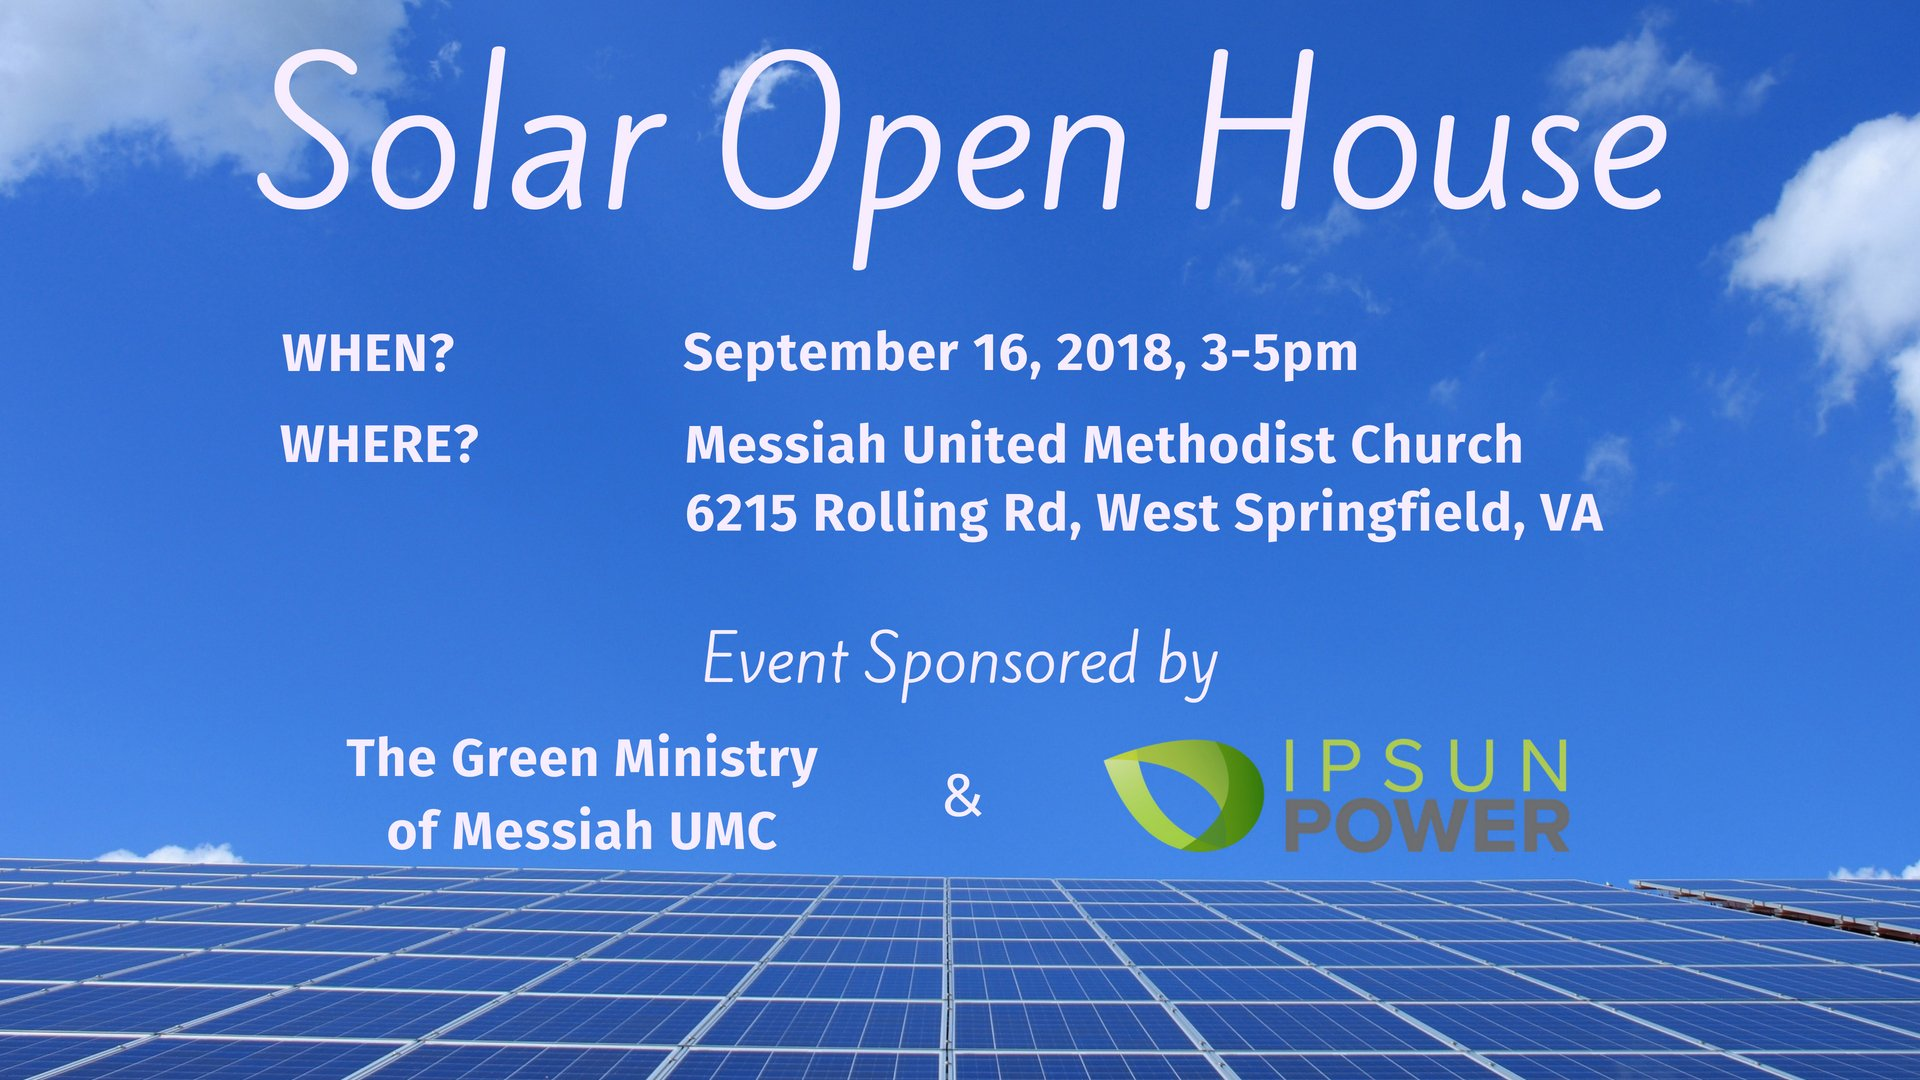 Solar Open House_Facebook Post 2